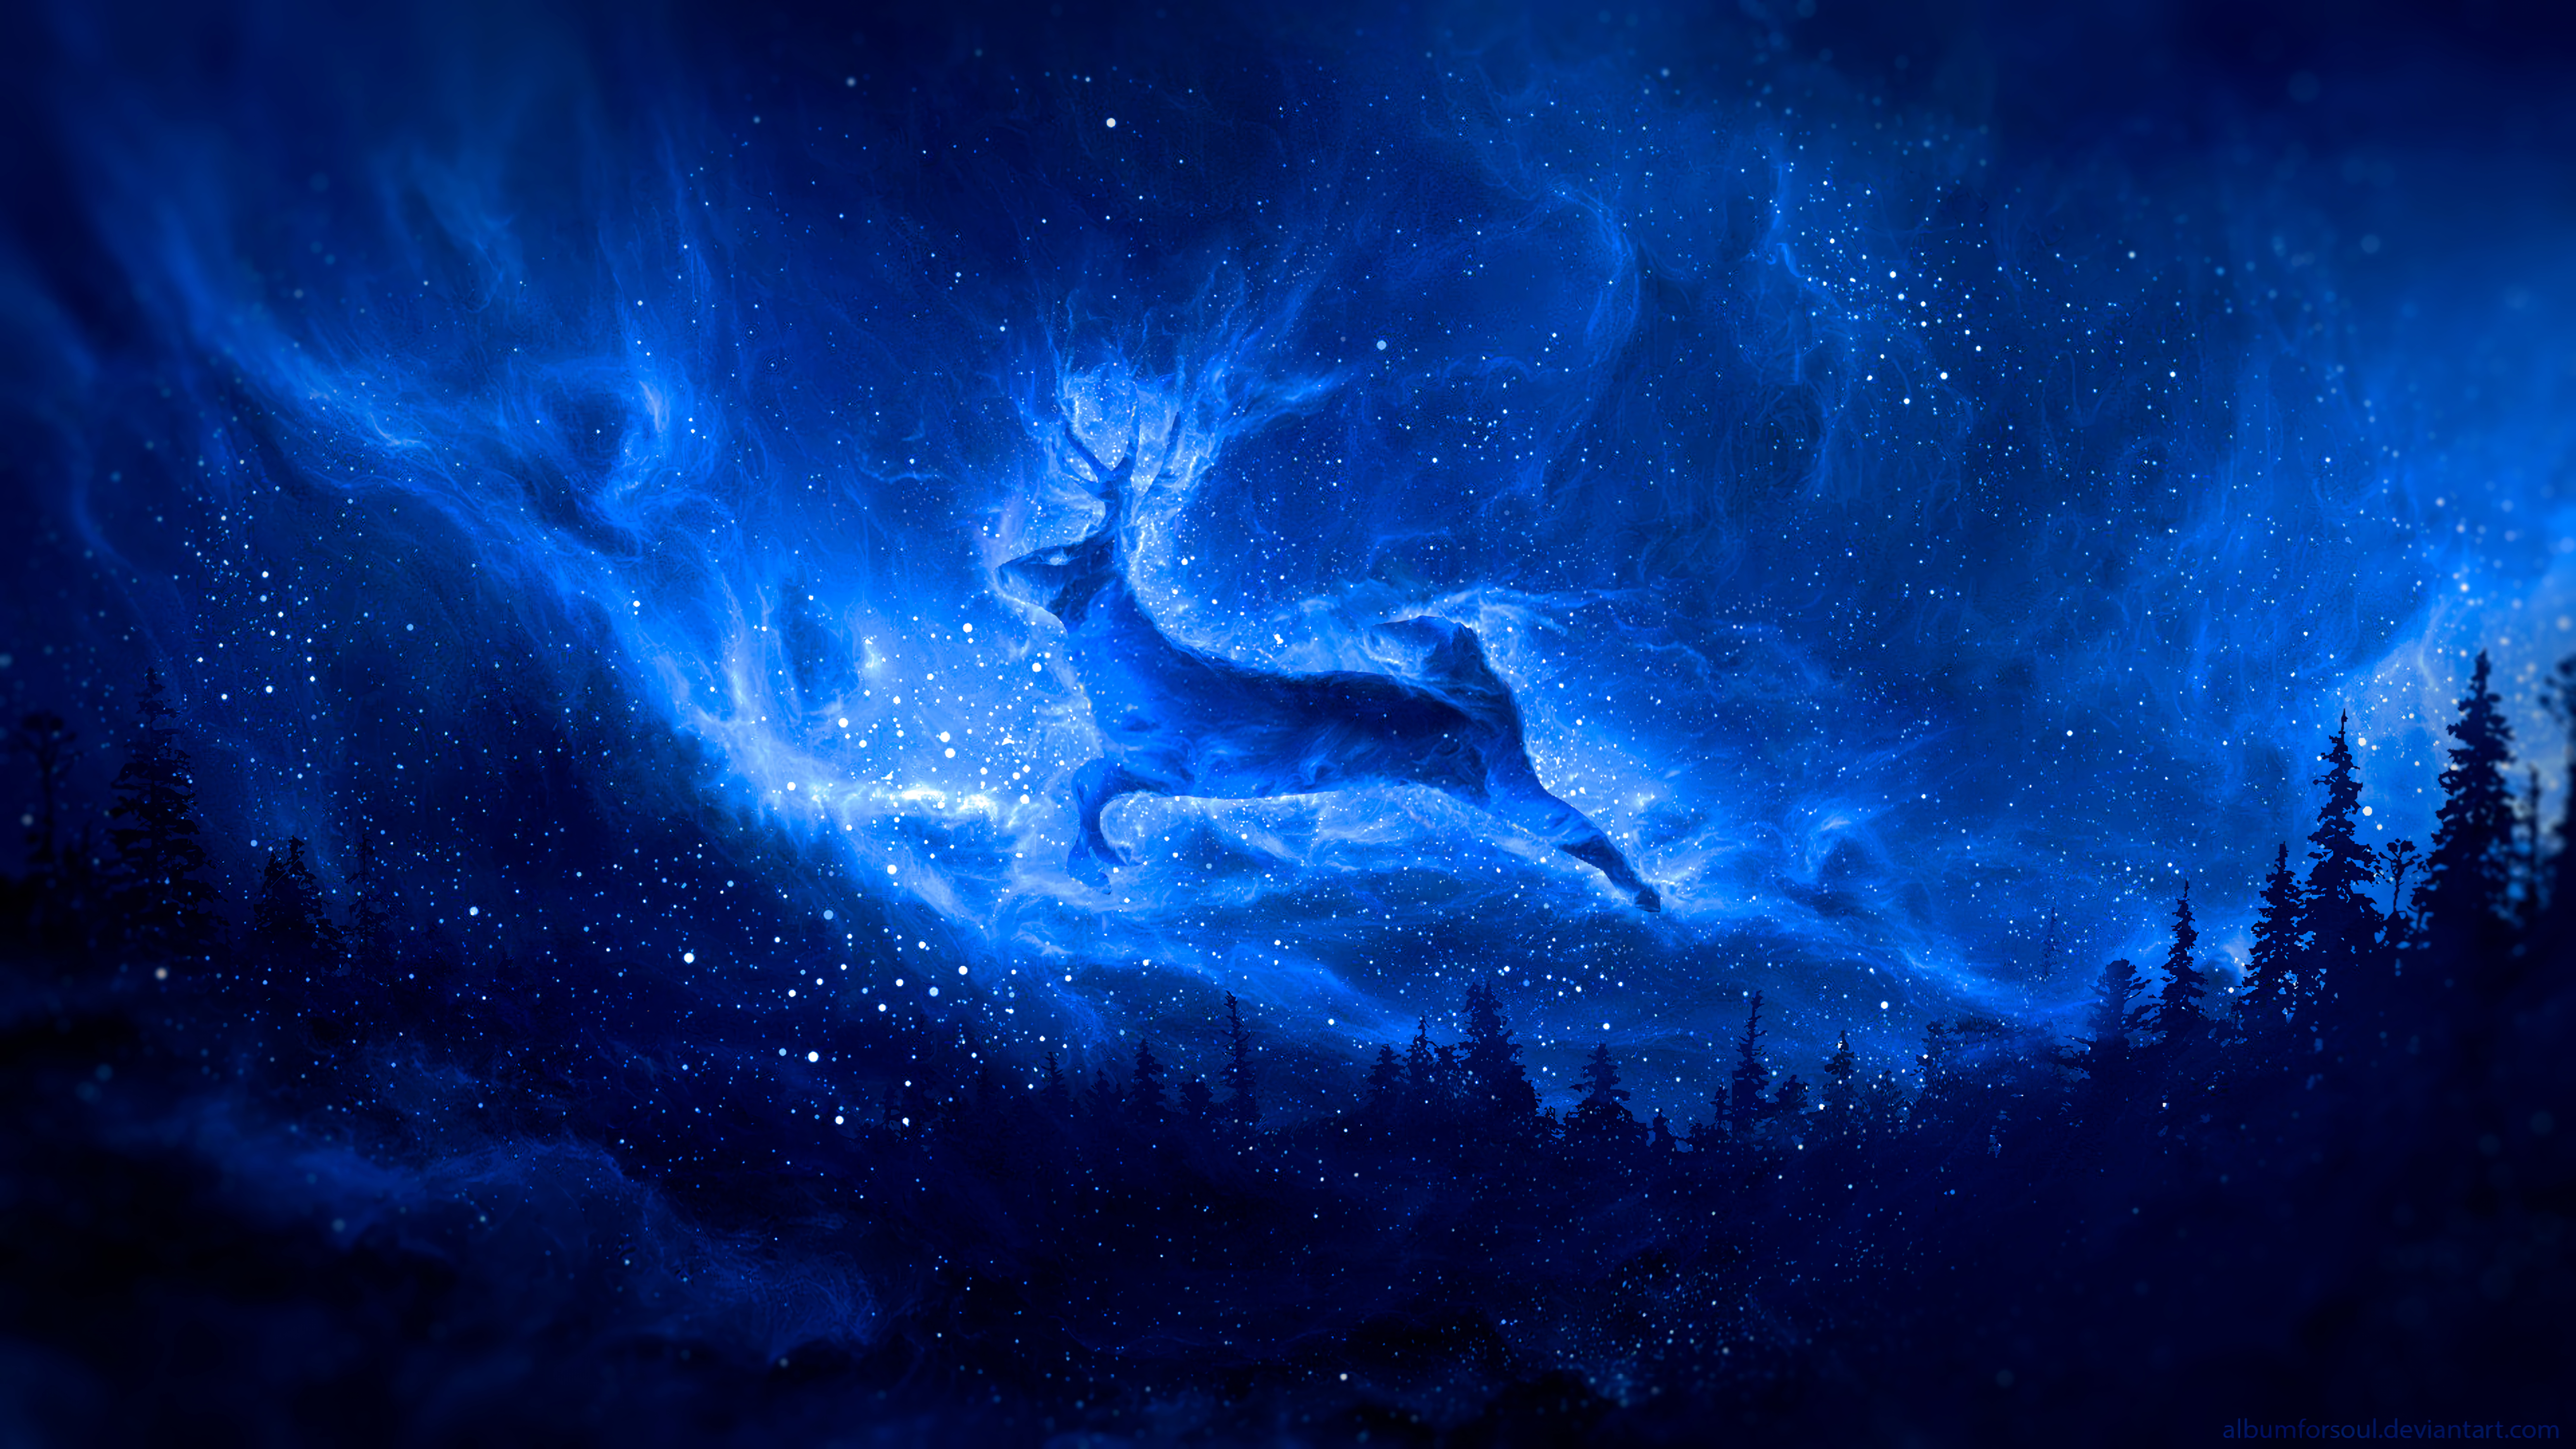 73924 download wallpaper Deer, Silhouette, Starry Sky, Art, Fantasy screensavers and pictures for free